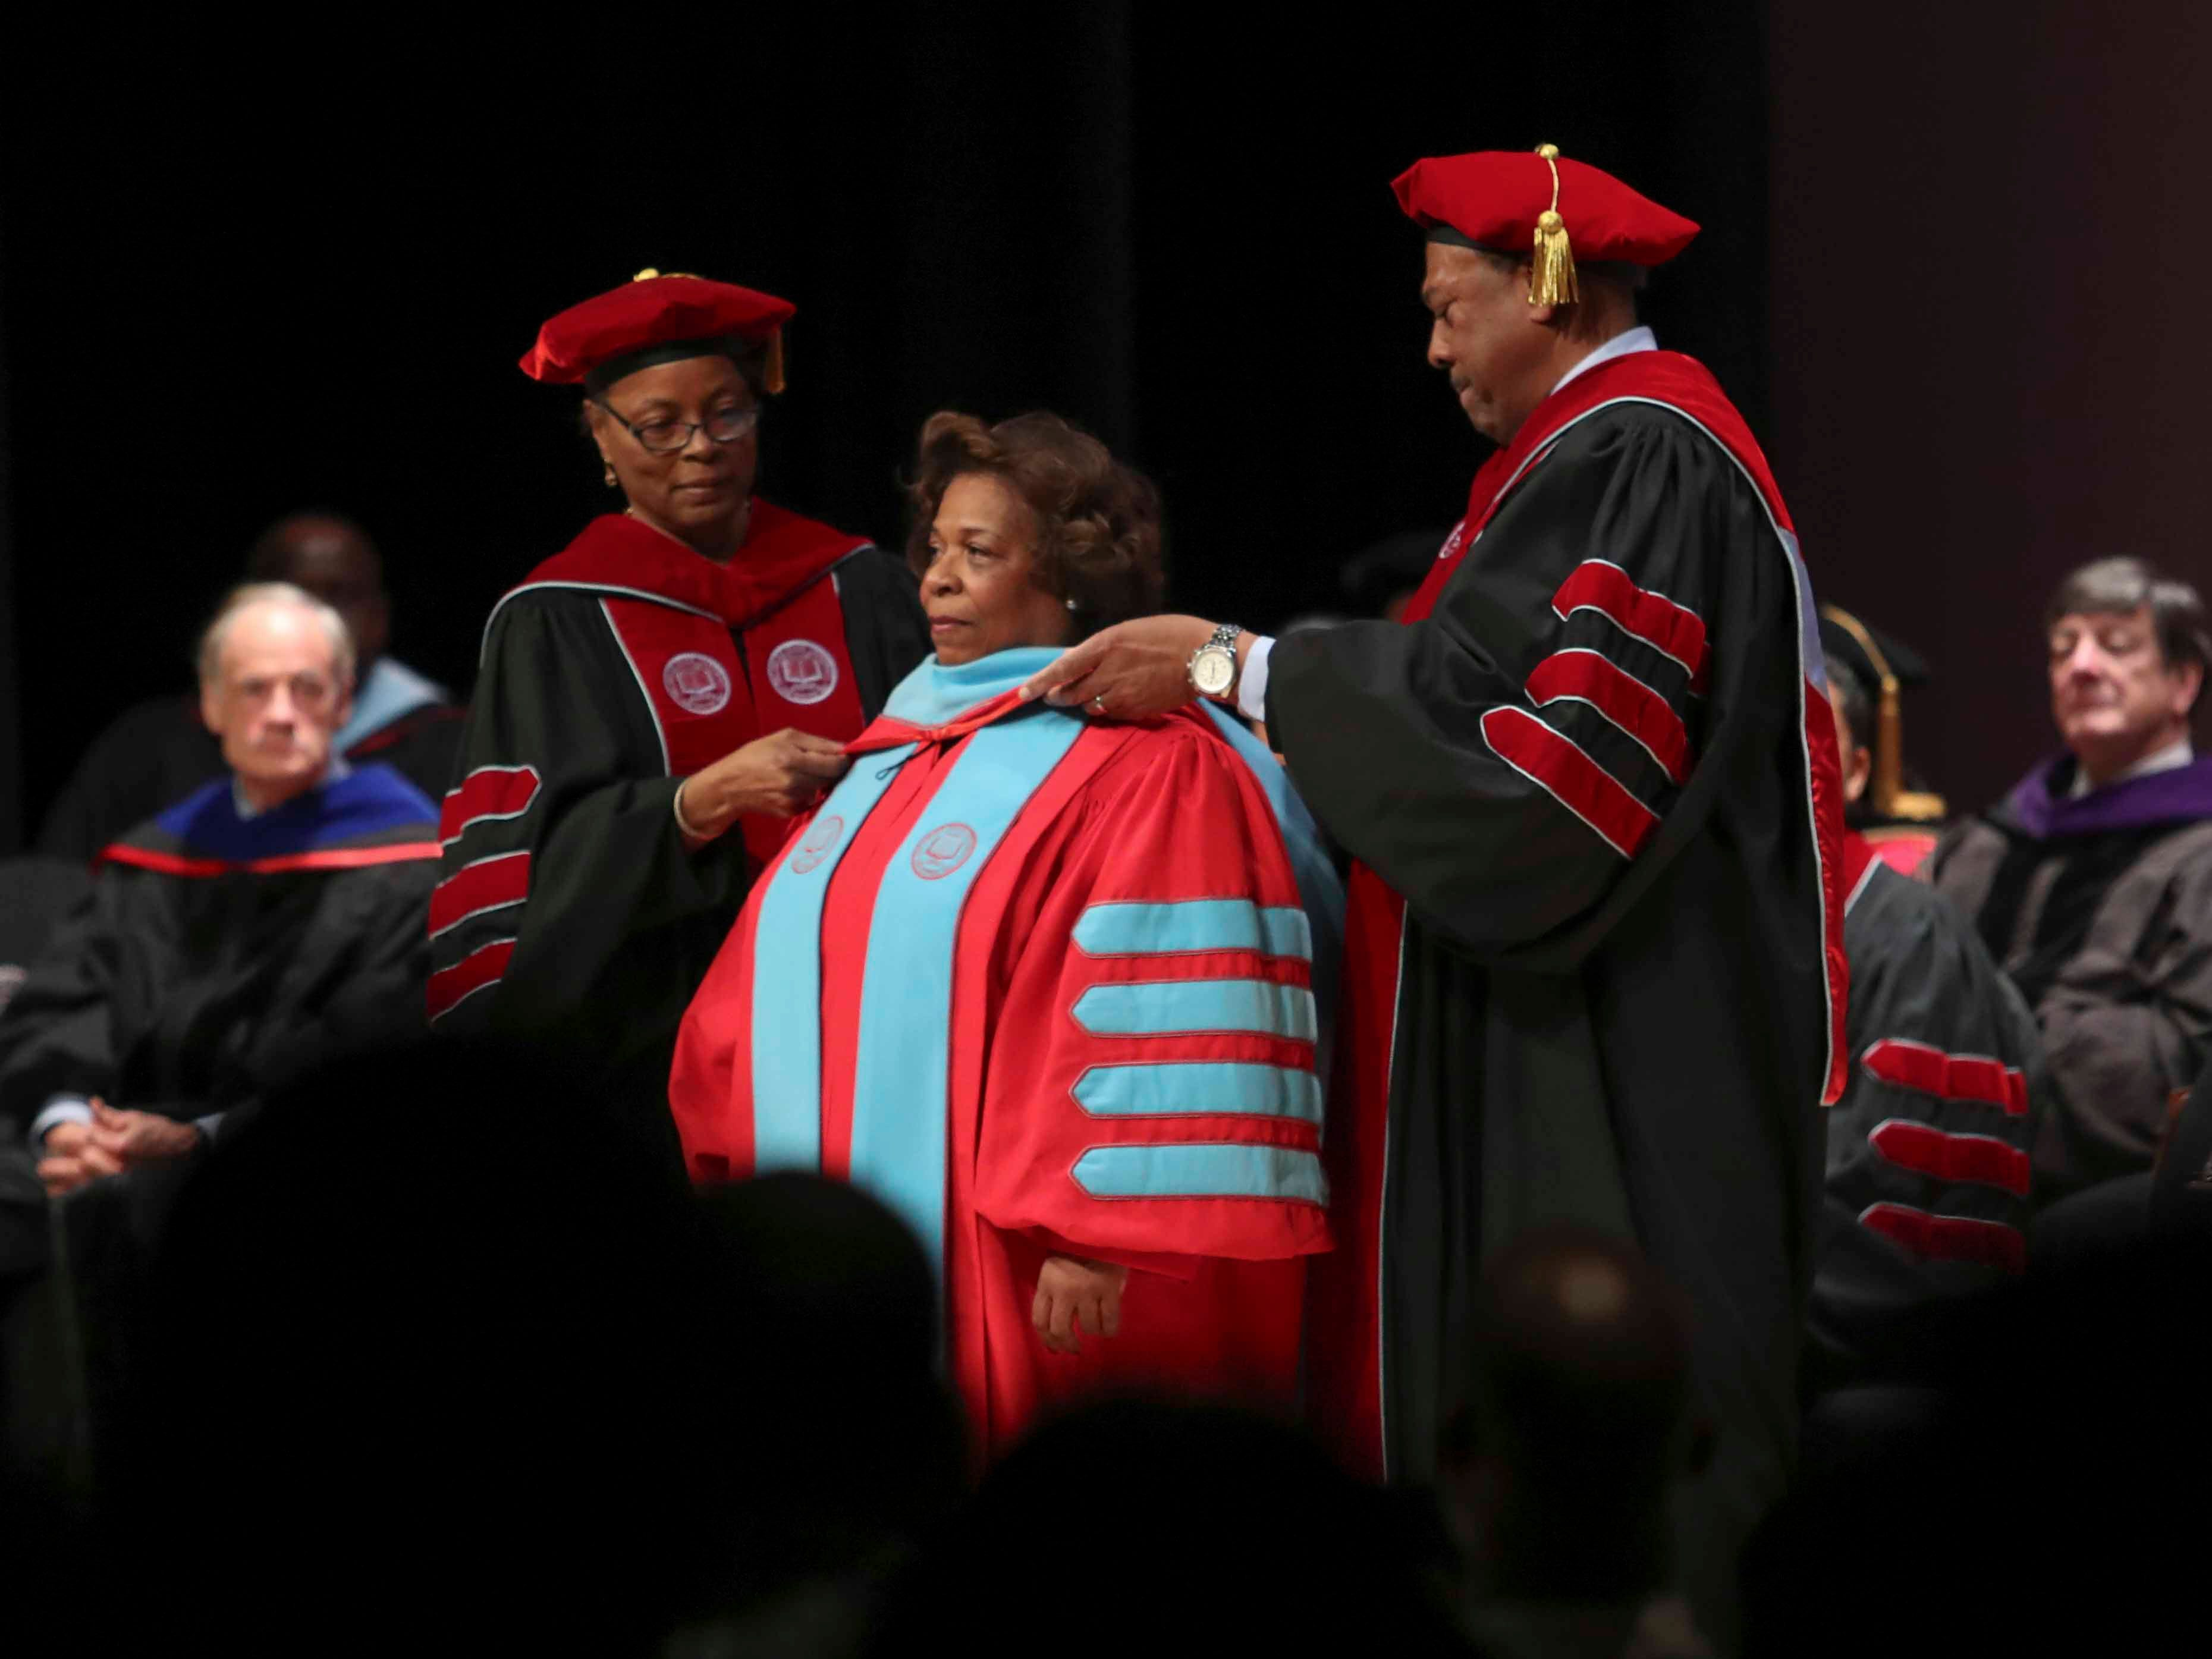 Wilma Mishoe receives the hood and gown of the presidency of Delaware State University by board of trustees members Debbie Harrington and John Ridgeway as she is formally conferred with the presidency of Delaware State University in an investiture ceremony Saturday at the Dover campus. Mishoe, a daughter of the university's 7th president, had been interim president since January before being named president in July. She is the university's 11th president and first woman president.